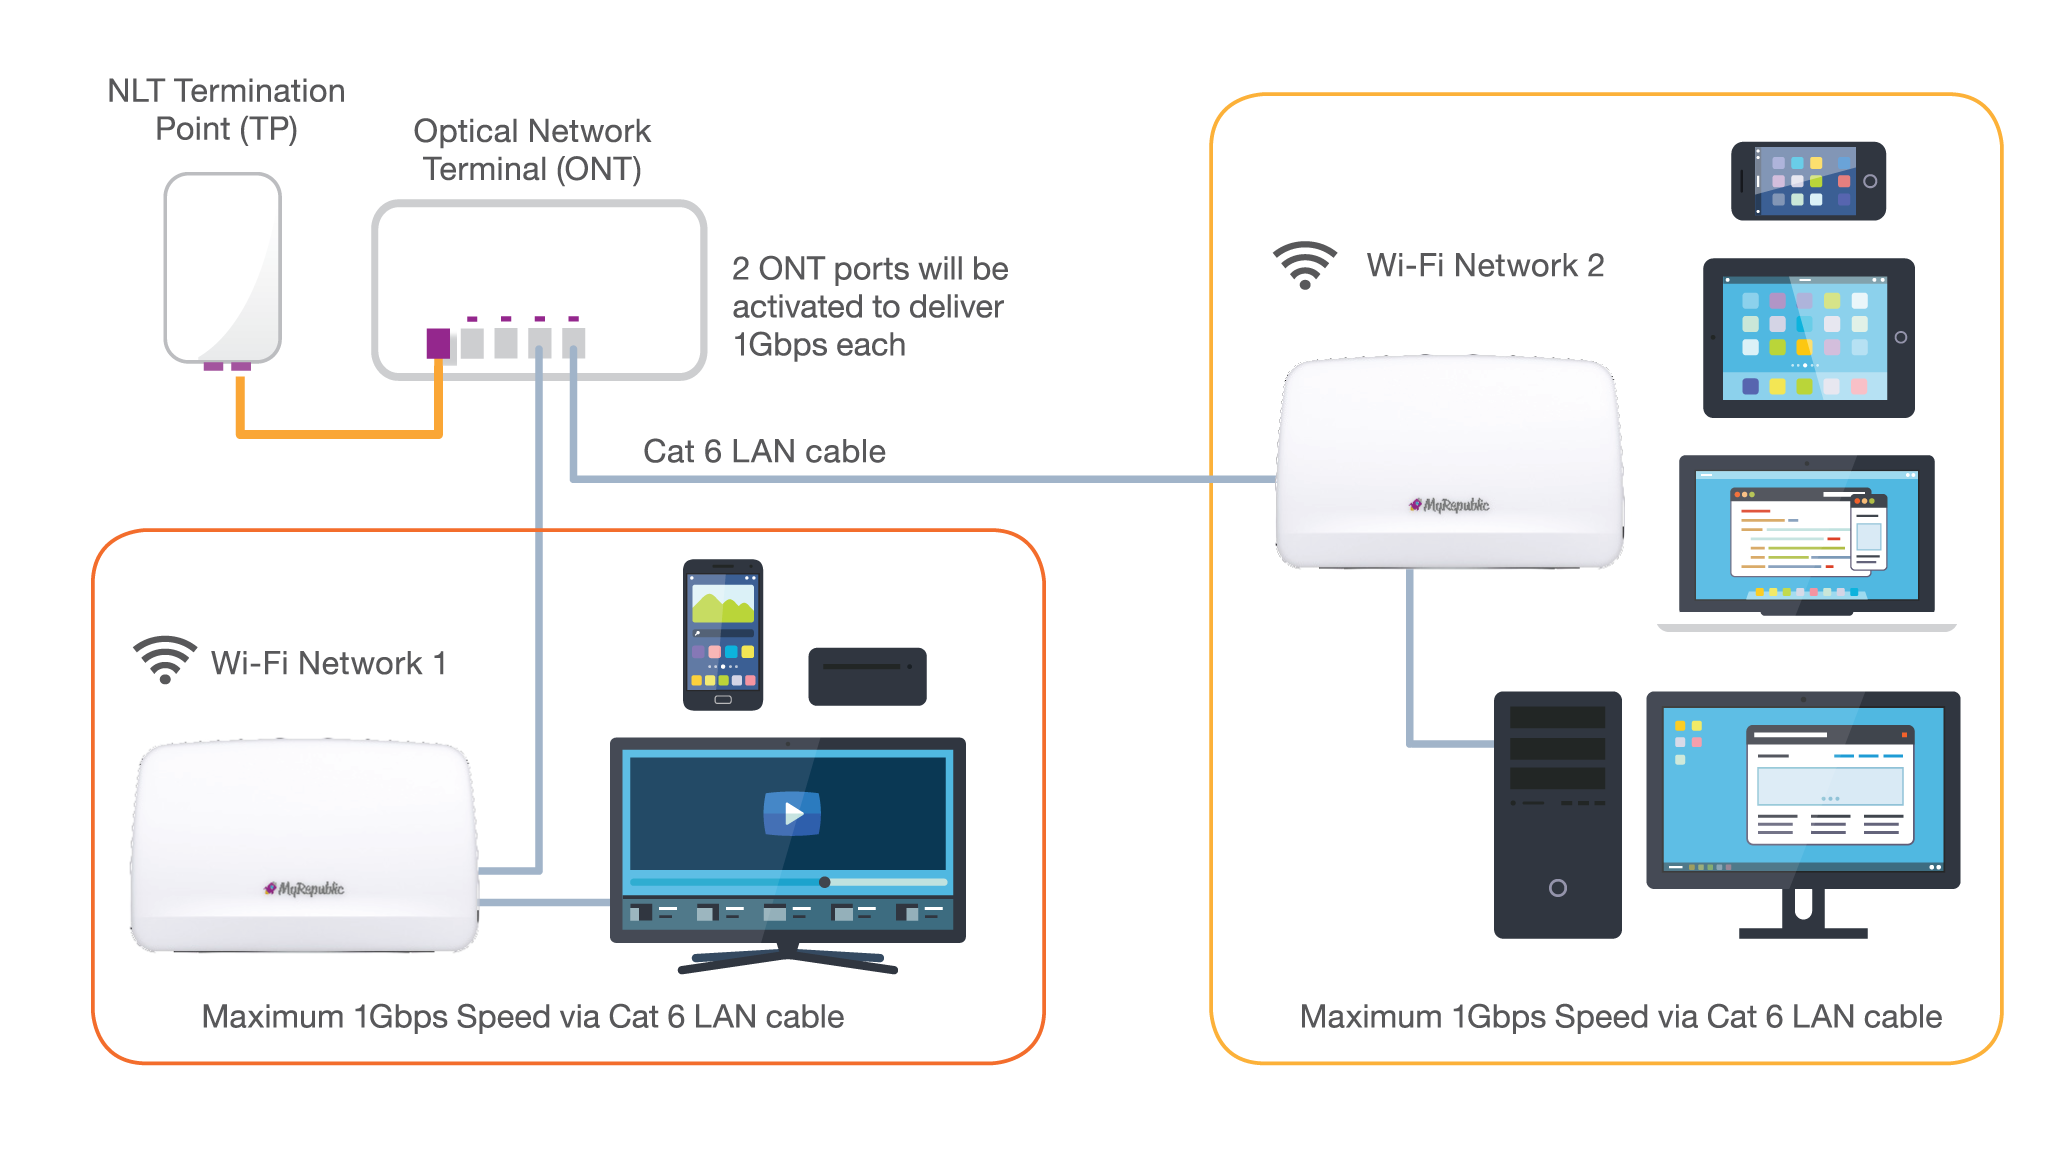 Dual Fibre Broadband Myrepublic Internet Connection Sharing Diagram Connect A Wi Fi Router To Each 1gbps Line Power Two Networks Extend Your Wireless Coverage Across Multiple Rooms And Floors Without